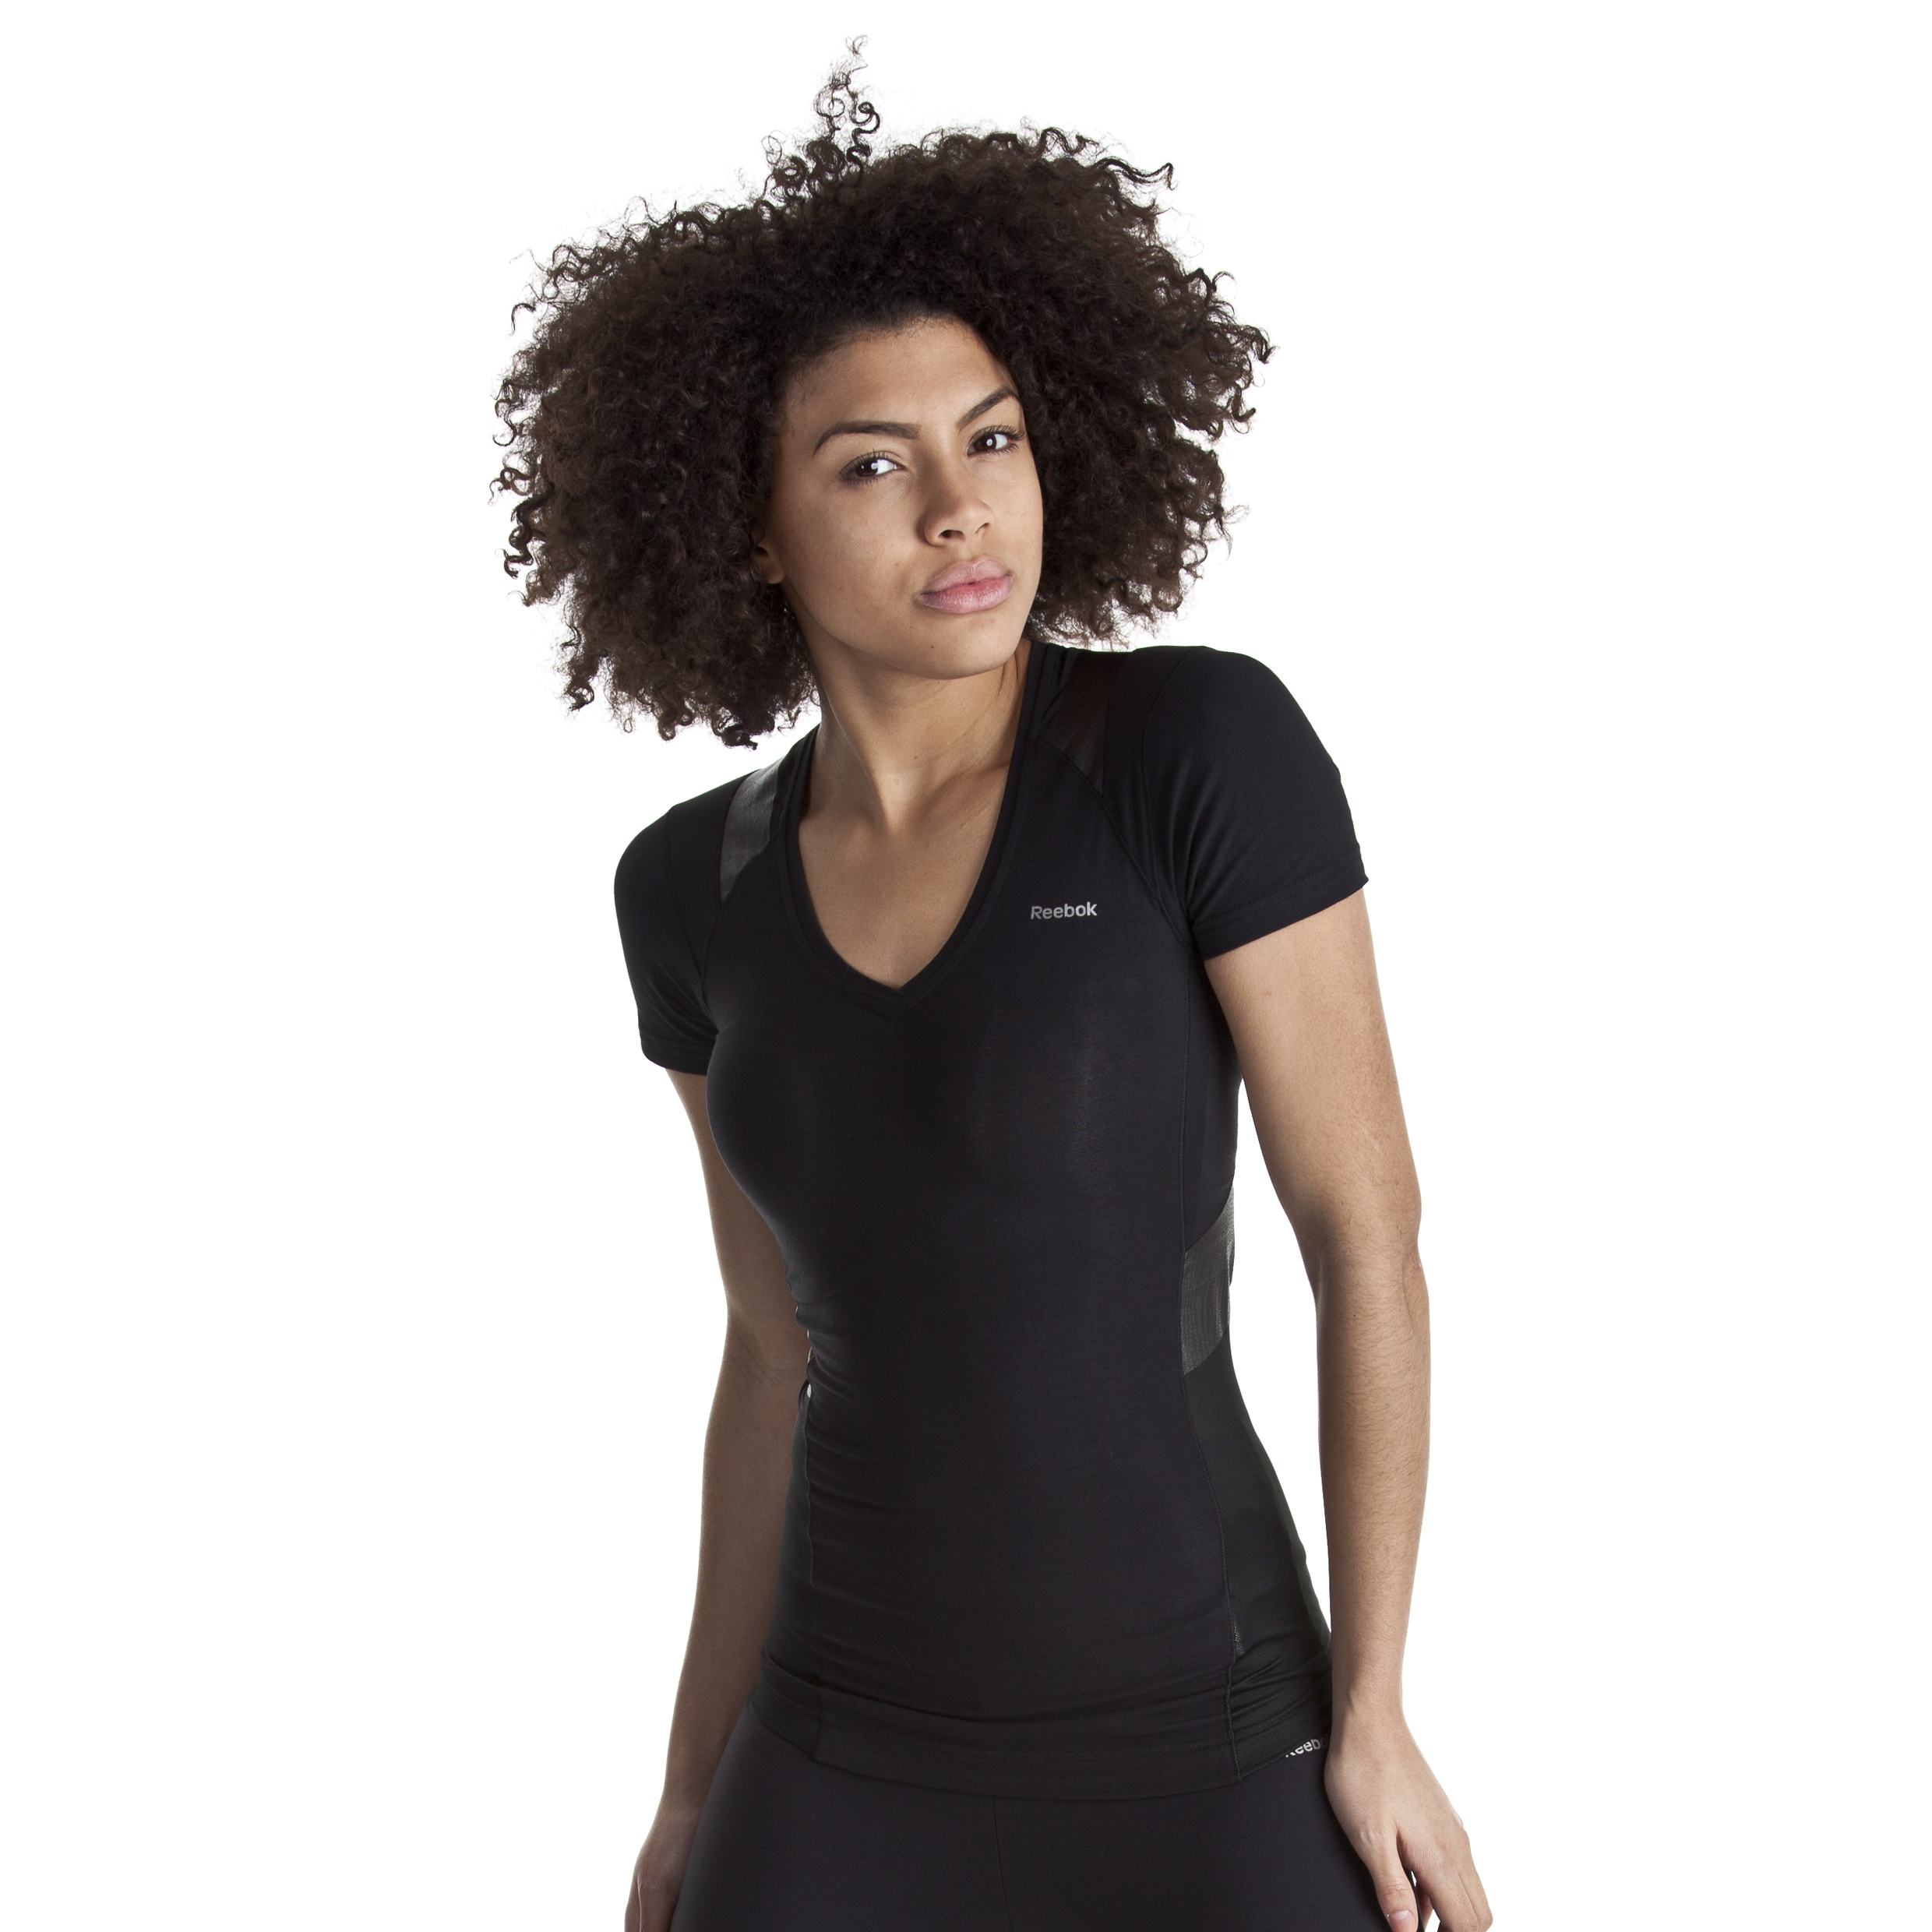 Reebok EasyTone Cotton V-Neck Tee - Black - Women